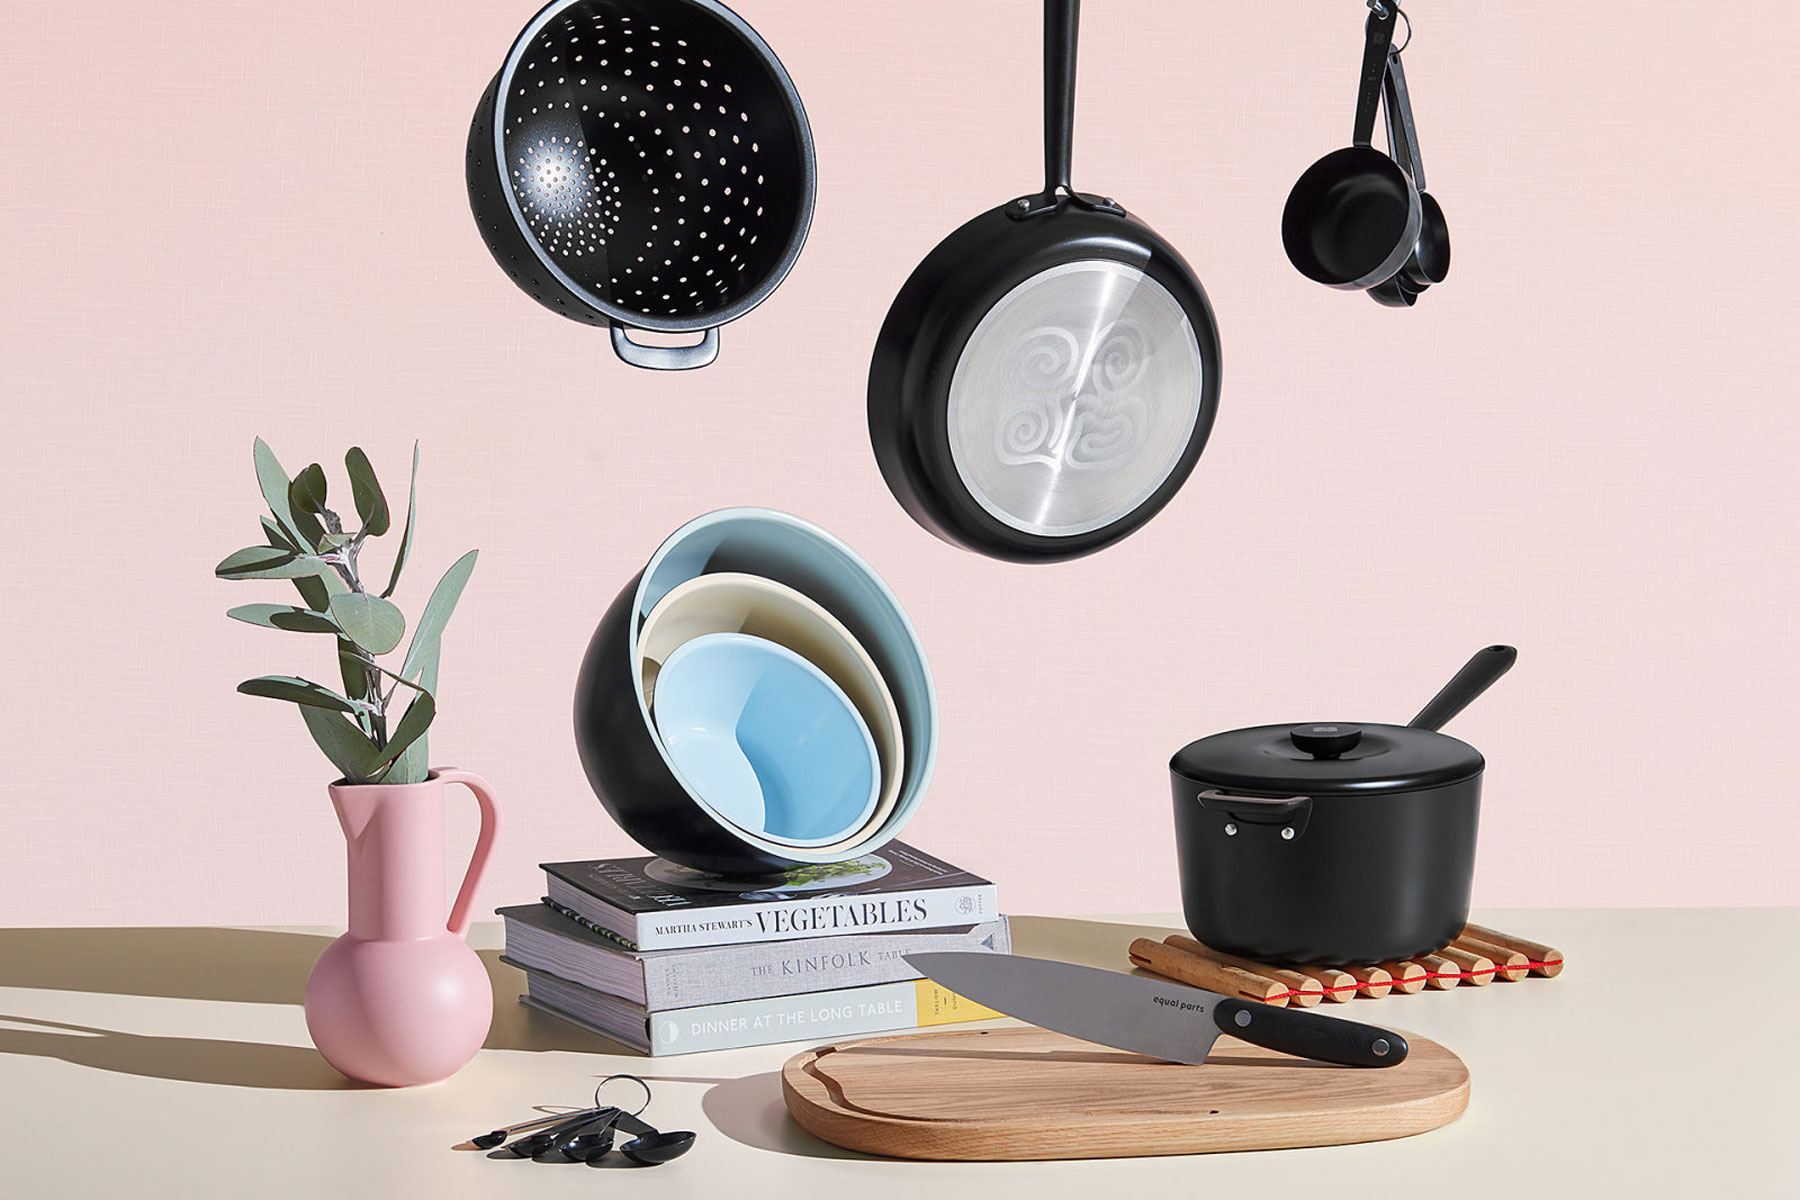 Black and stainless steel cookware set